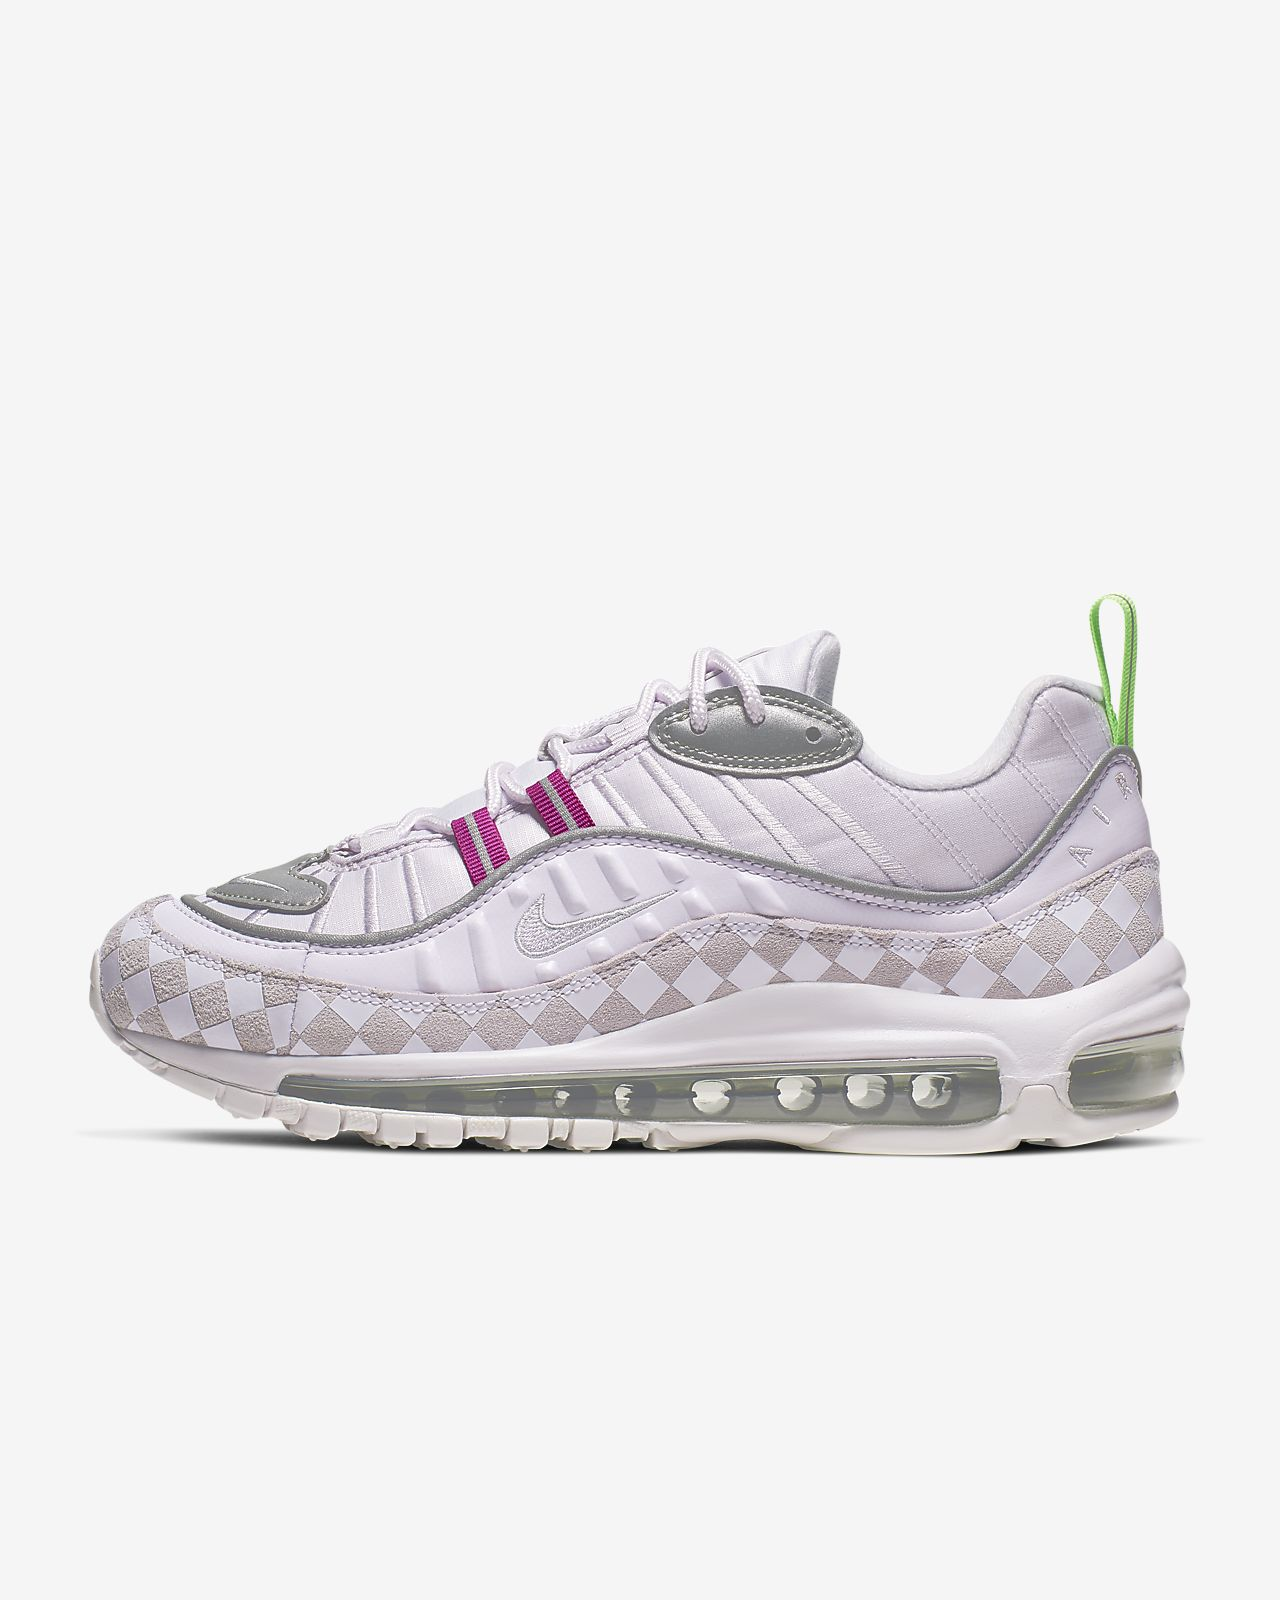 Nike Air Max 98 Women's Chequered Shoe